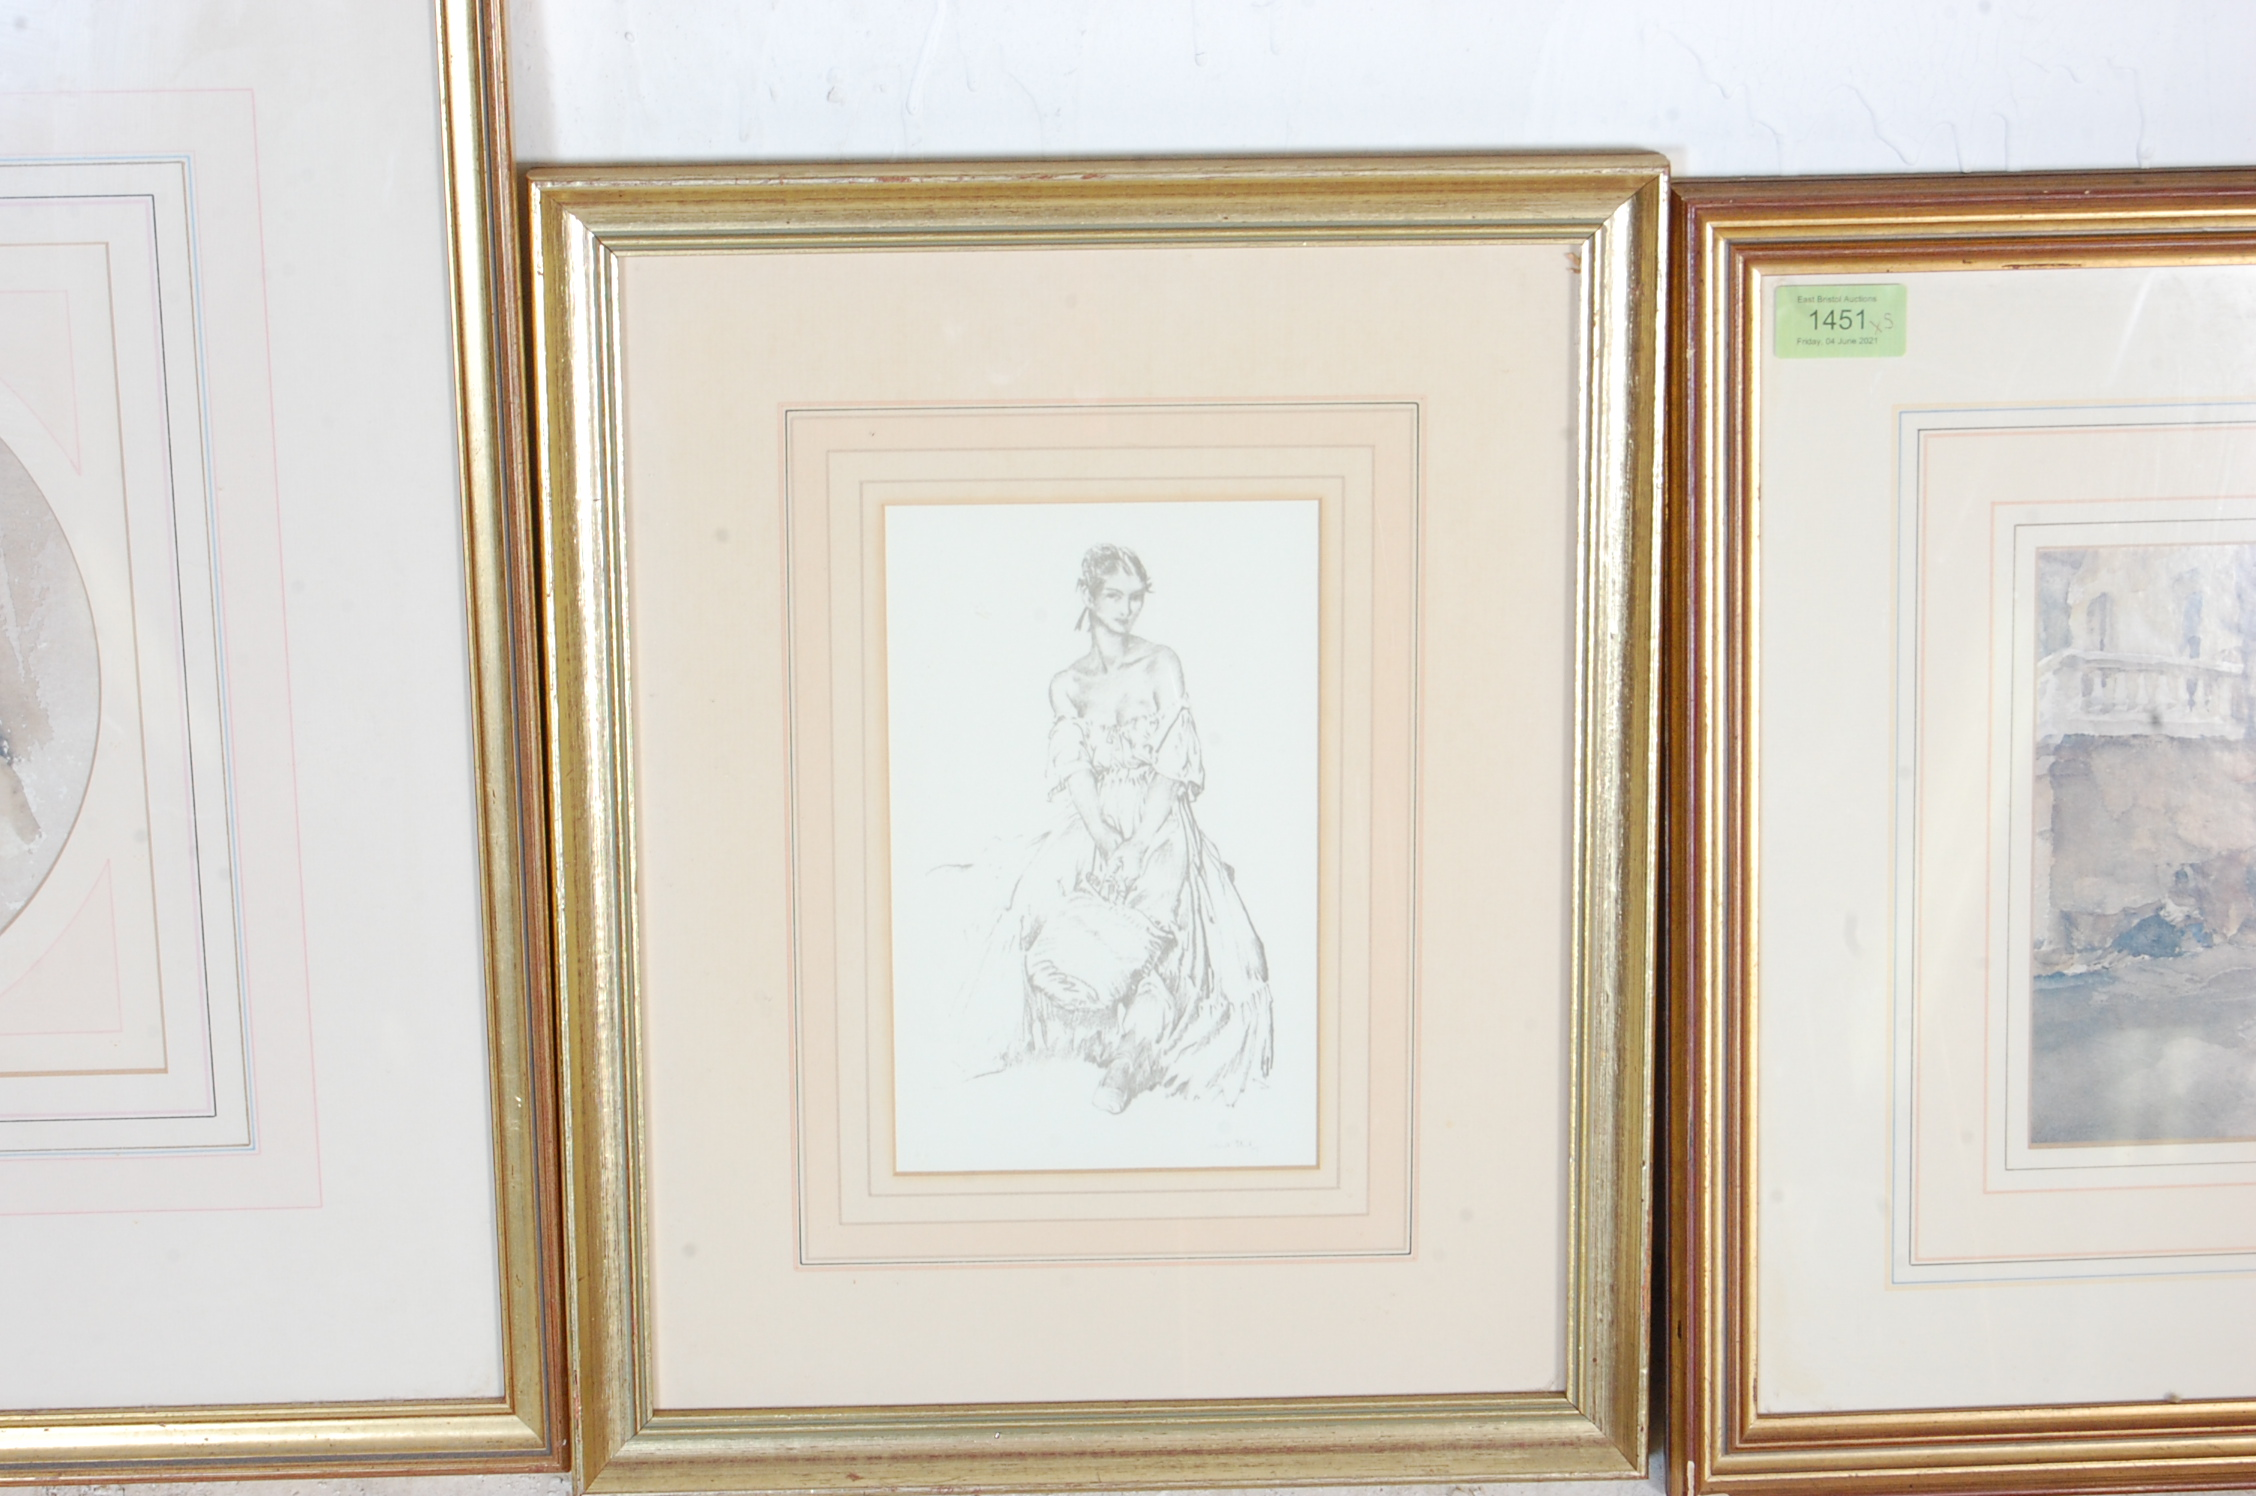 COLLECTION OF FIVE VINTAGE WILLIAM R. FLINT PICTURE PRINTS - Image 3 of 6